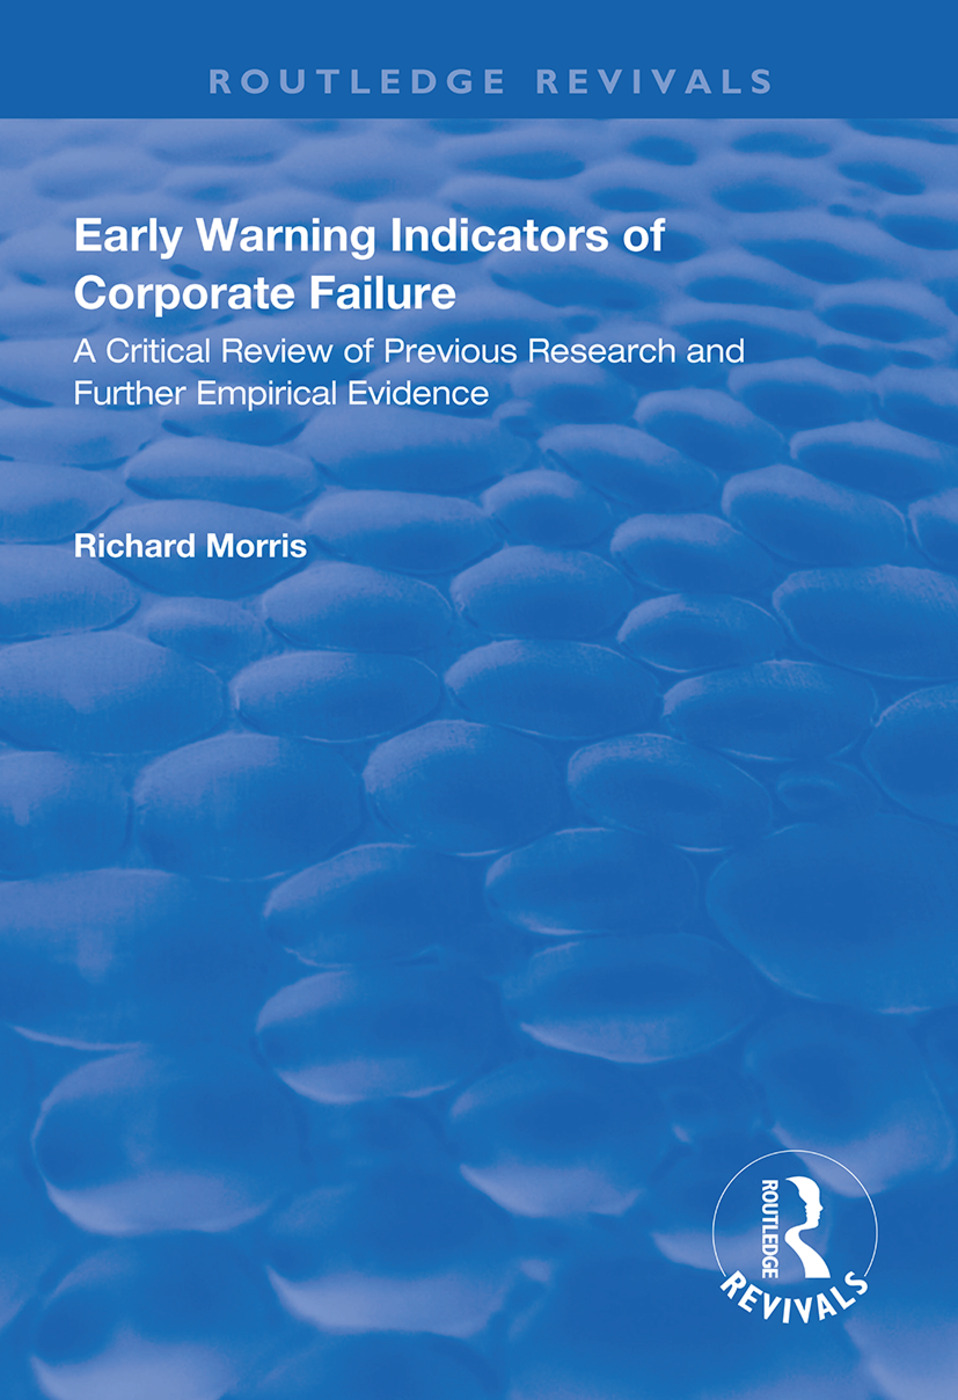 Early Warning Indicators of Corporate Failure